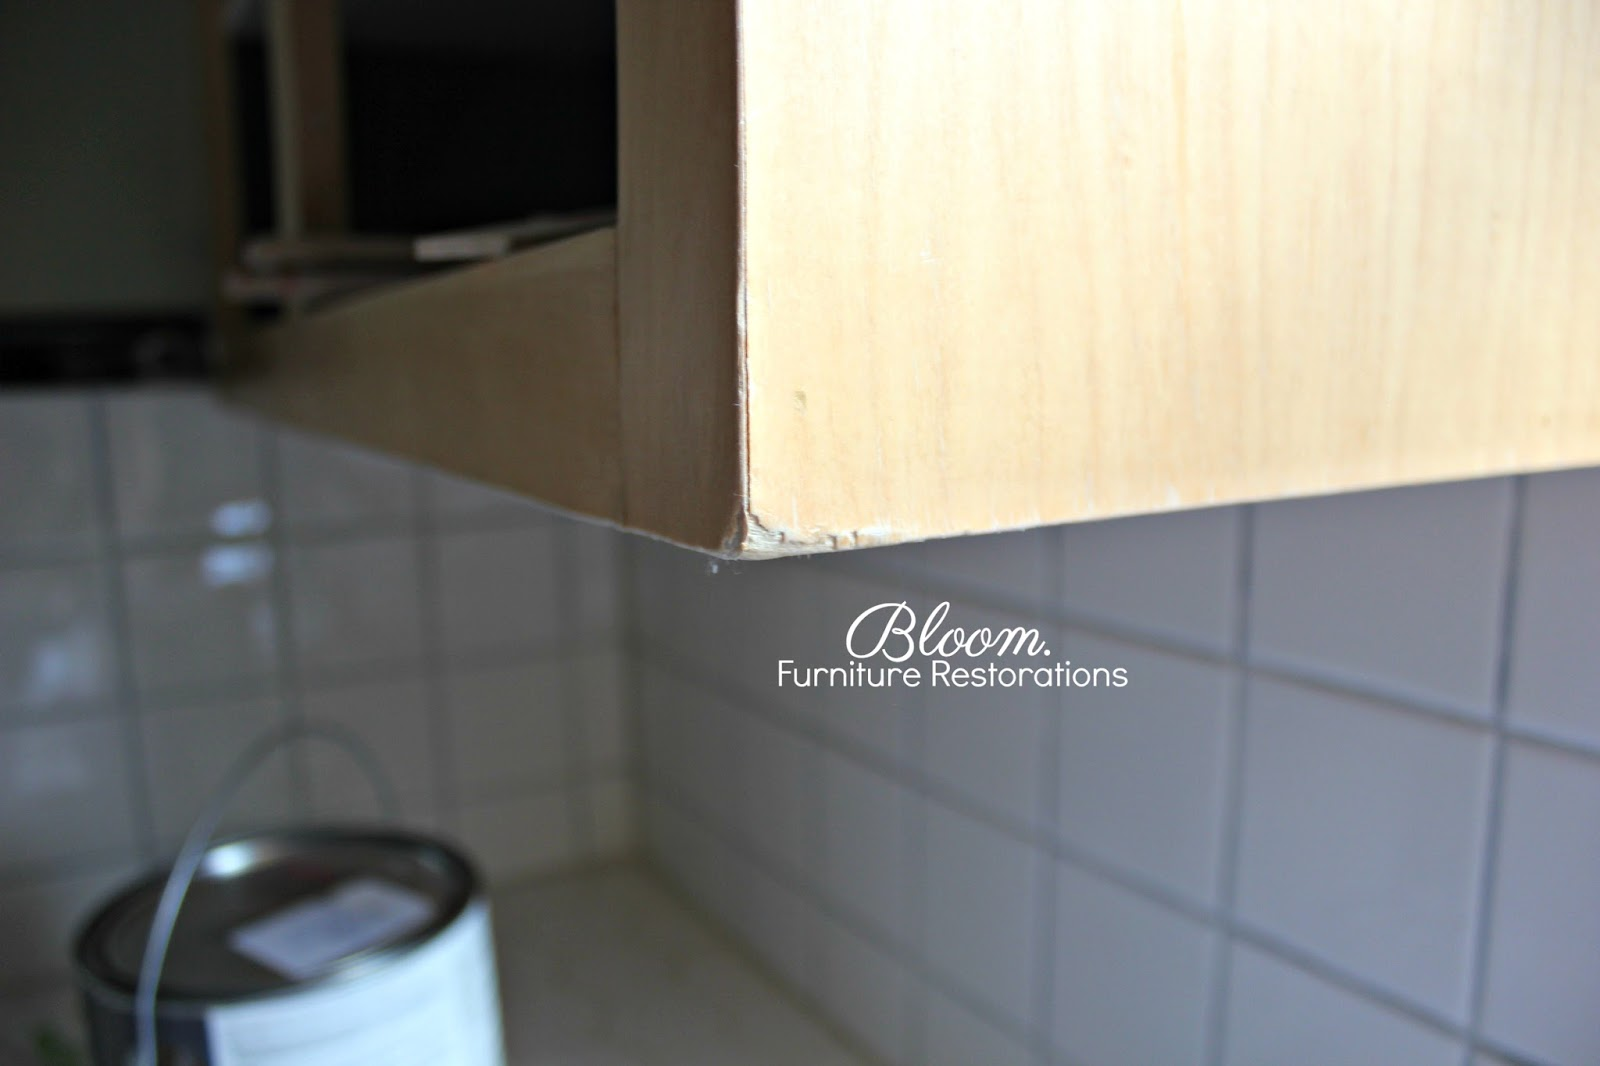 There Was Chipped Veneer At The Corner And Along Front Edge Of Cabinet Laminate Had Started To Pull Away